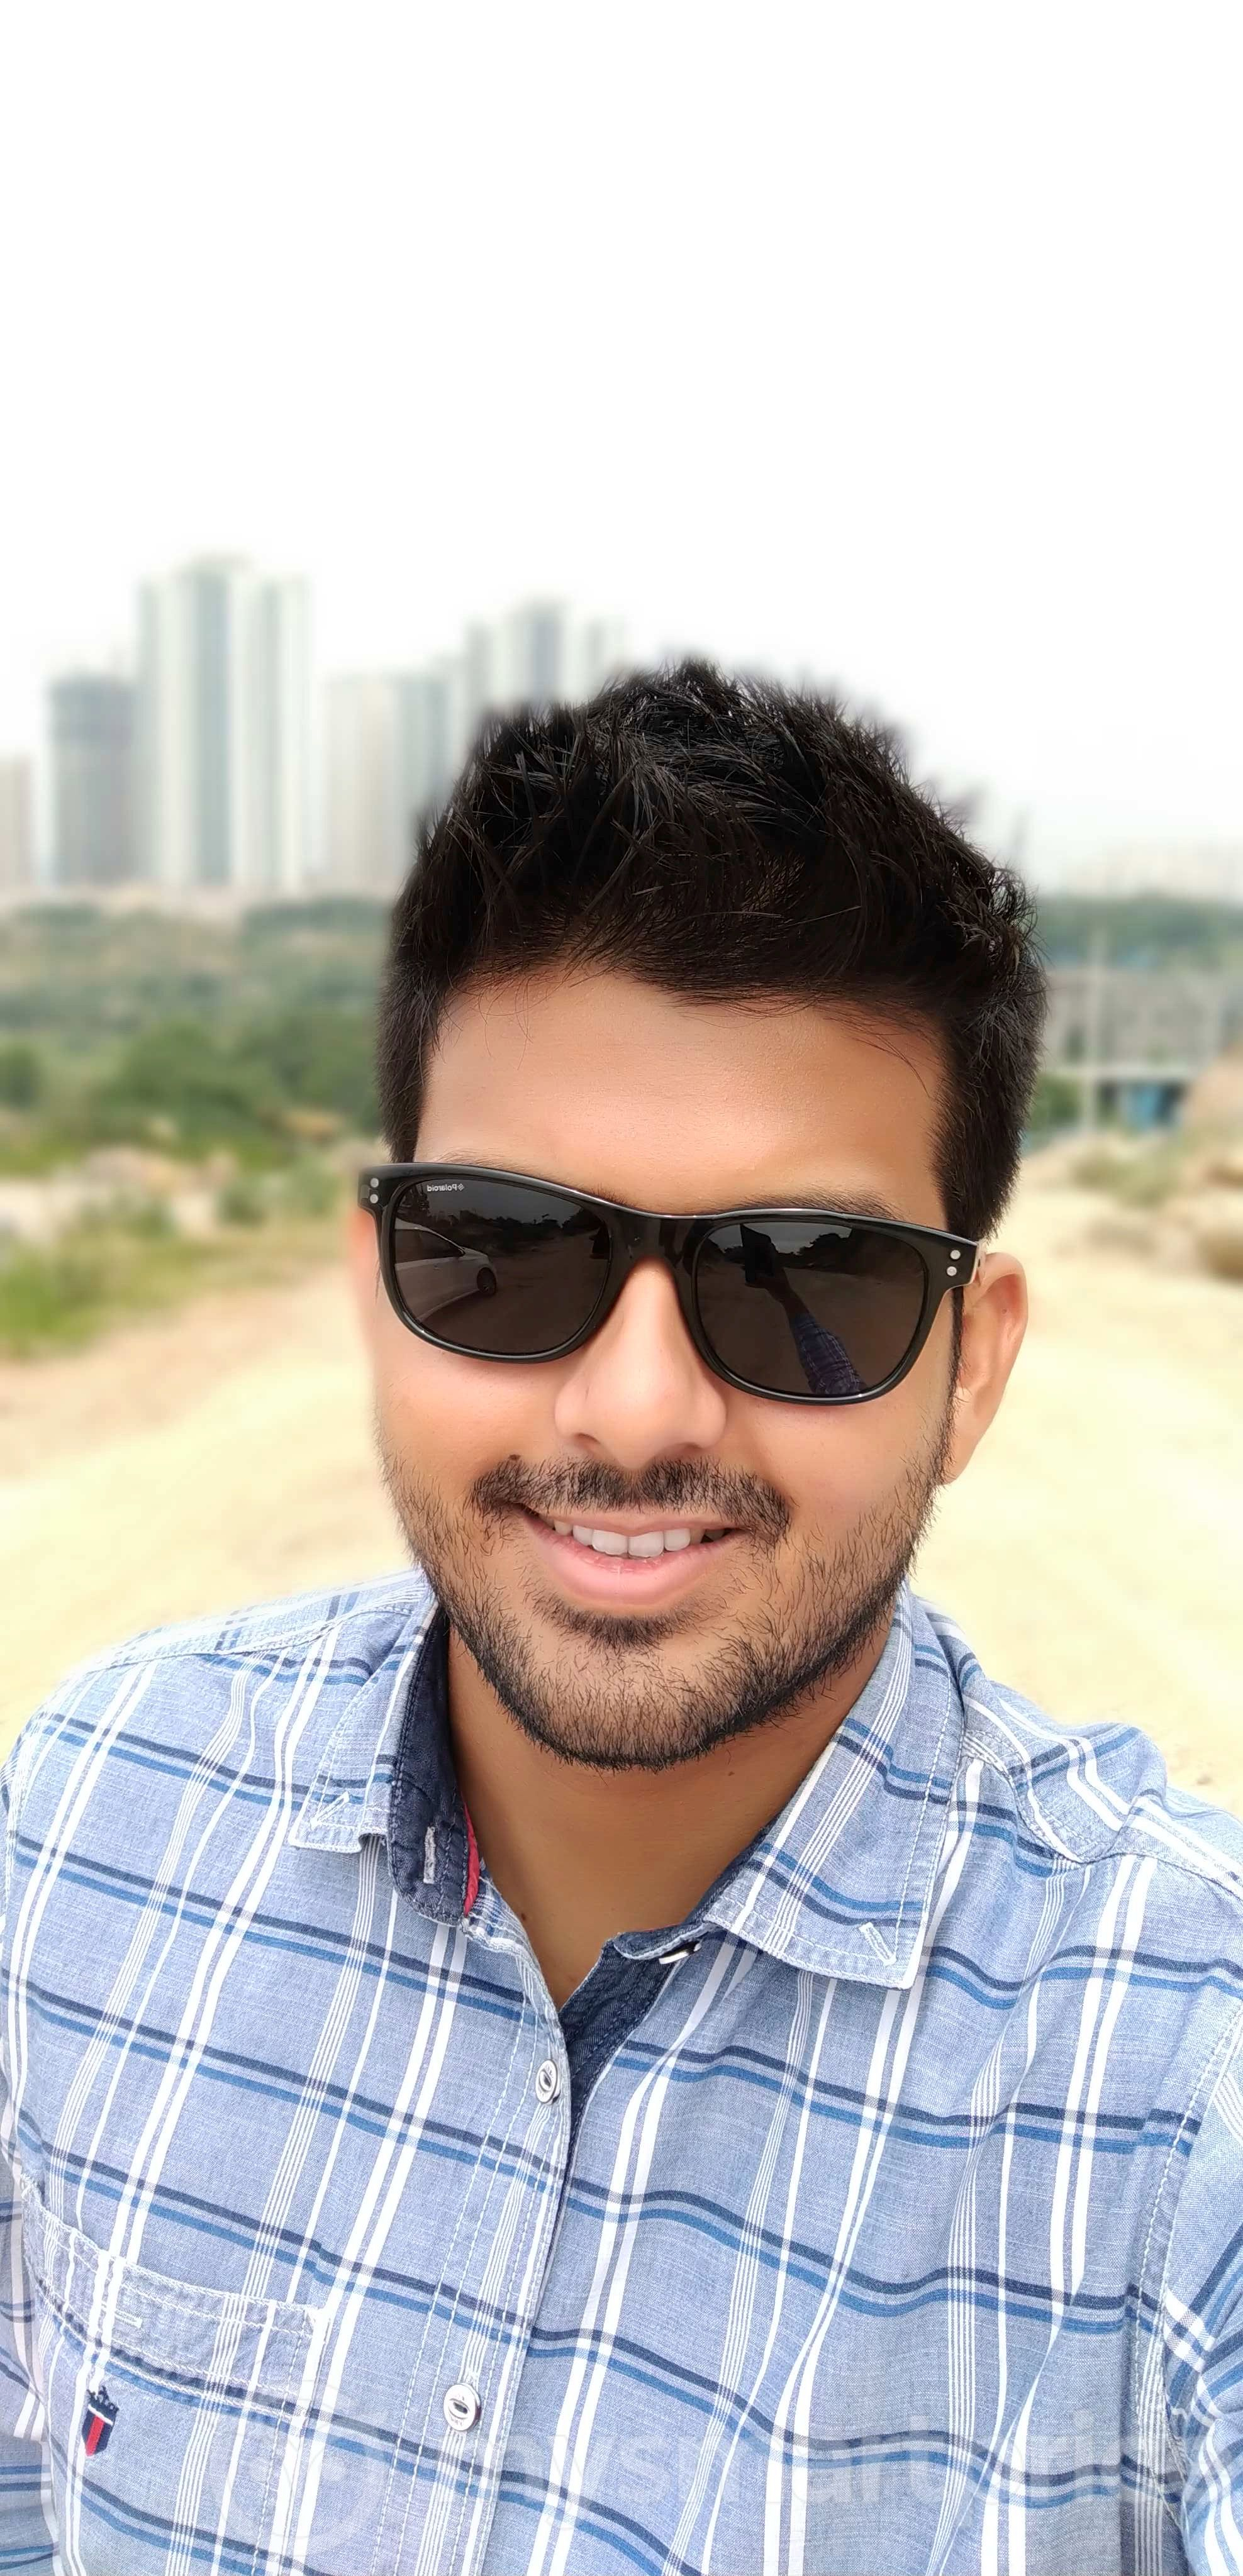 Motorola Moto One Power Review: Front-facing Camera Sample 04 (Bokeh Mode With Beauty)